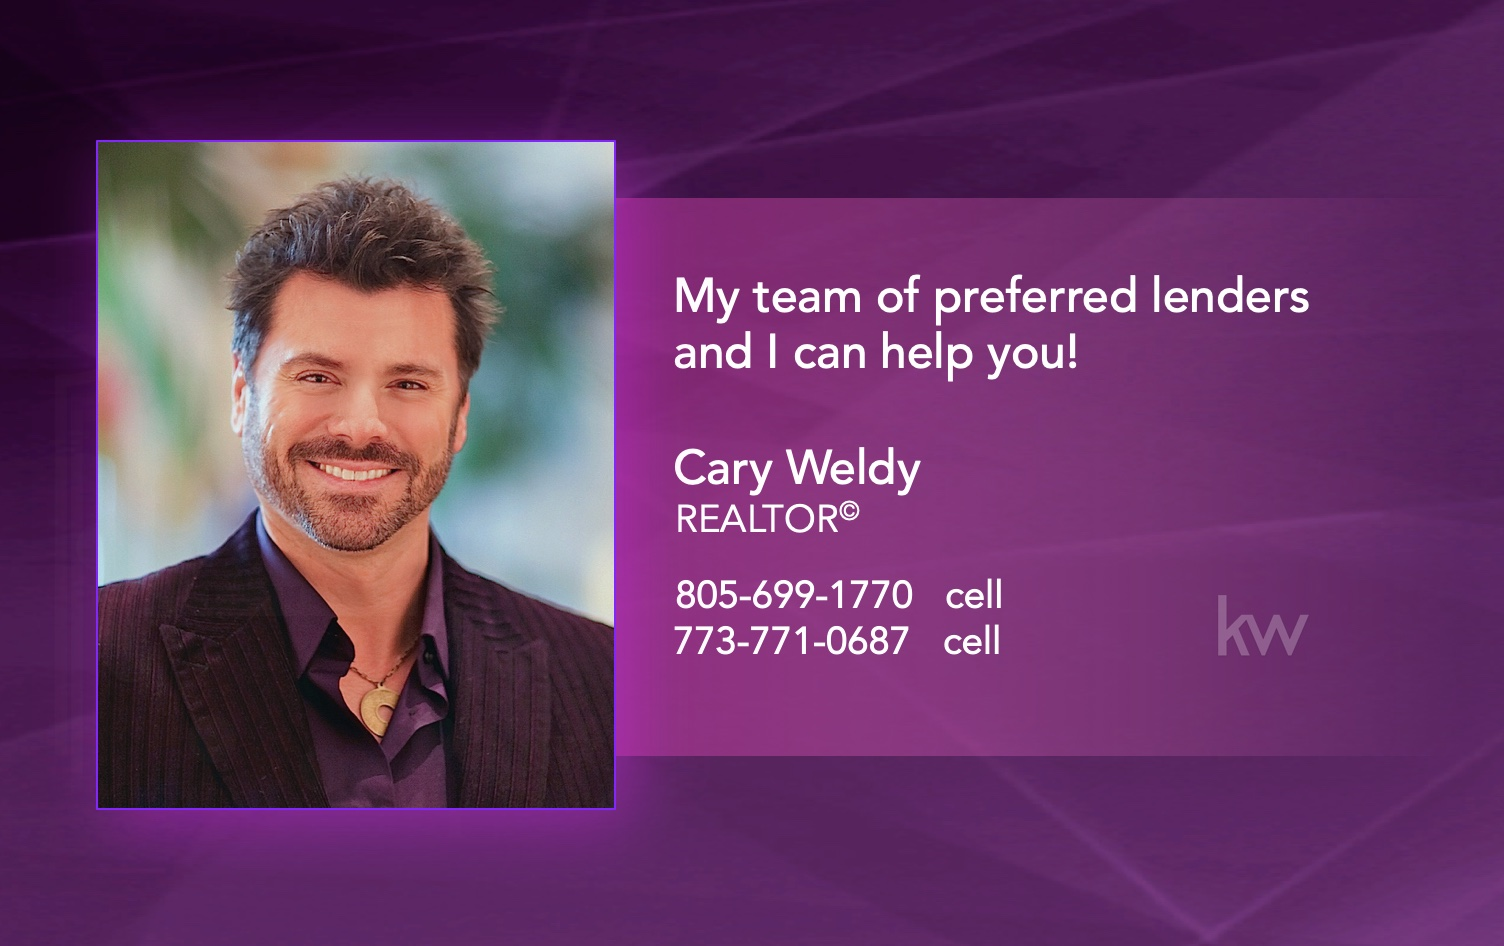 Cary Weldy - my team of preferred lenders and I can help you .jpg